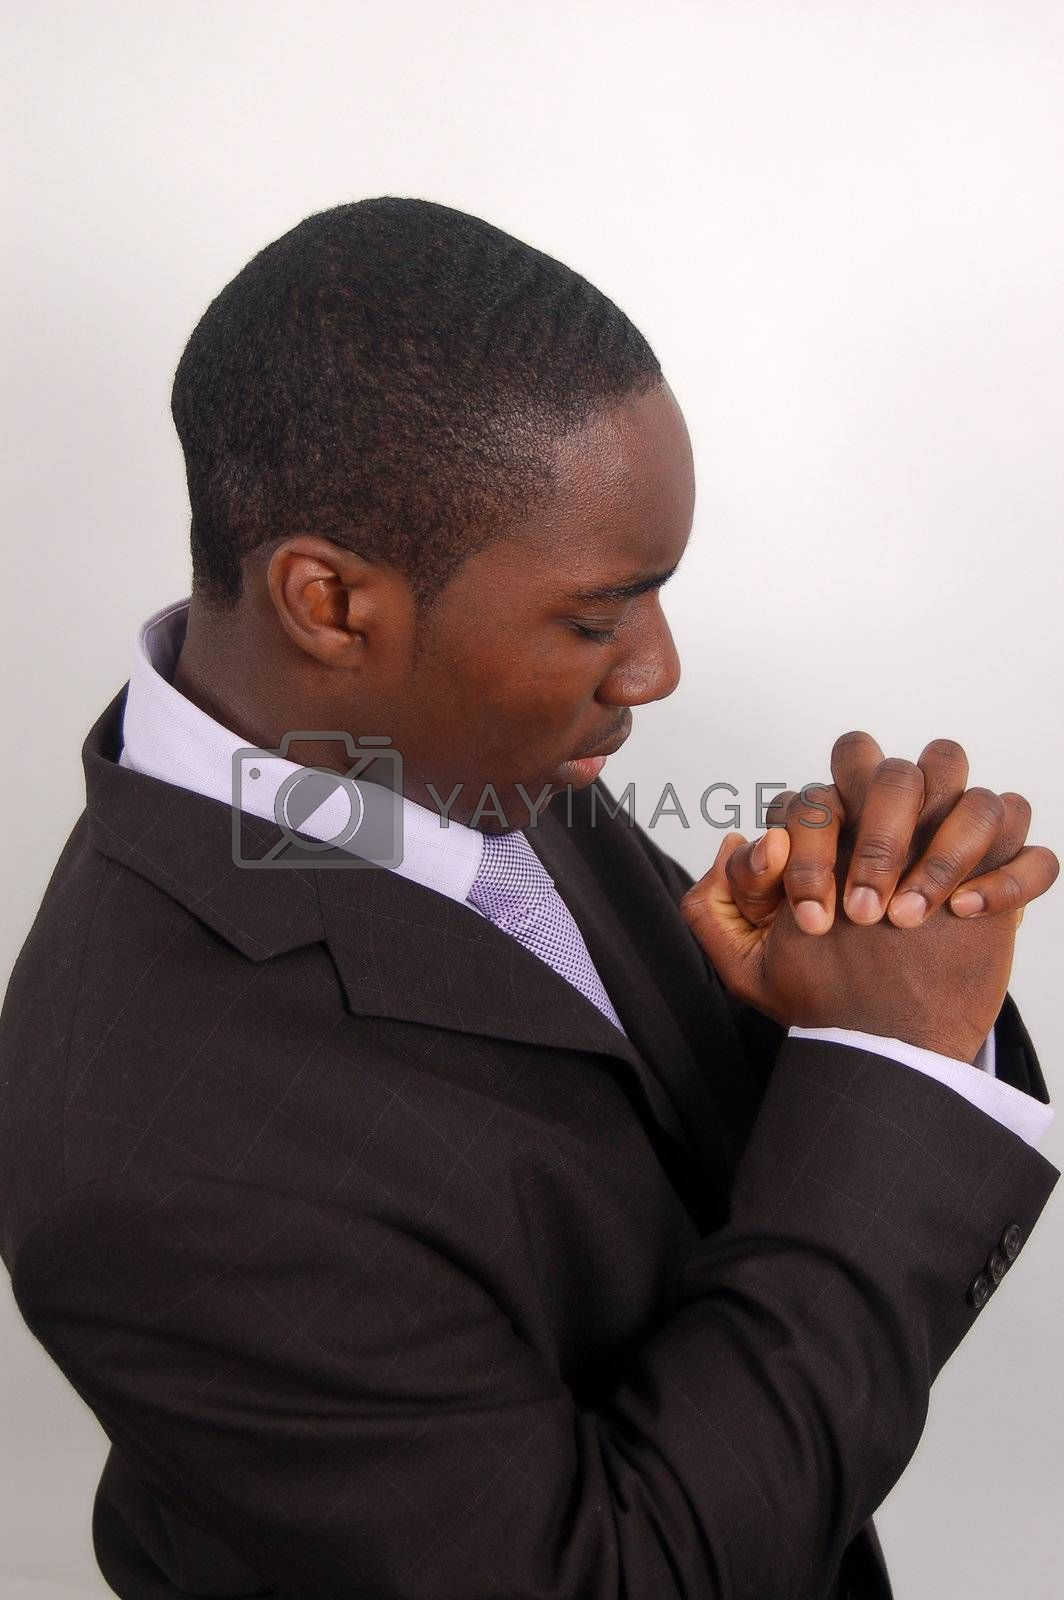 Royalty free image of Sincere Prayer by Imabase